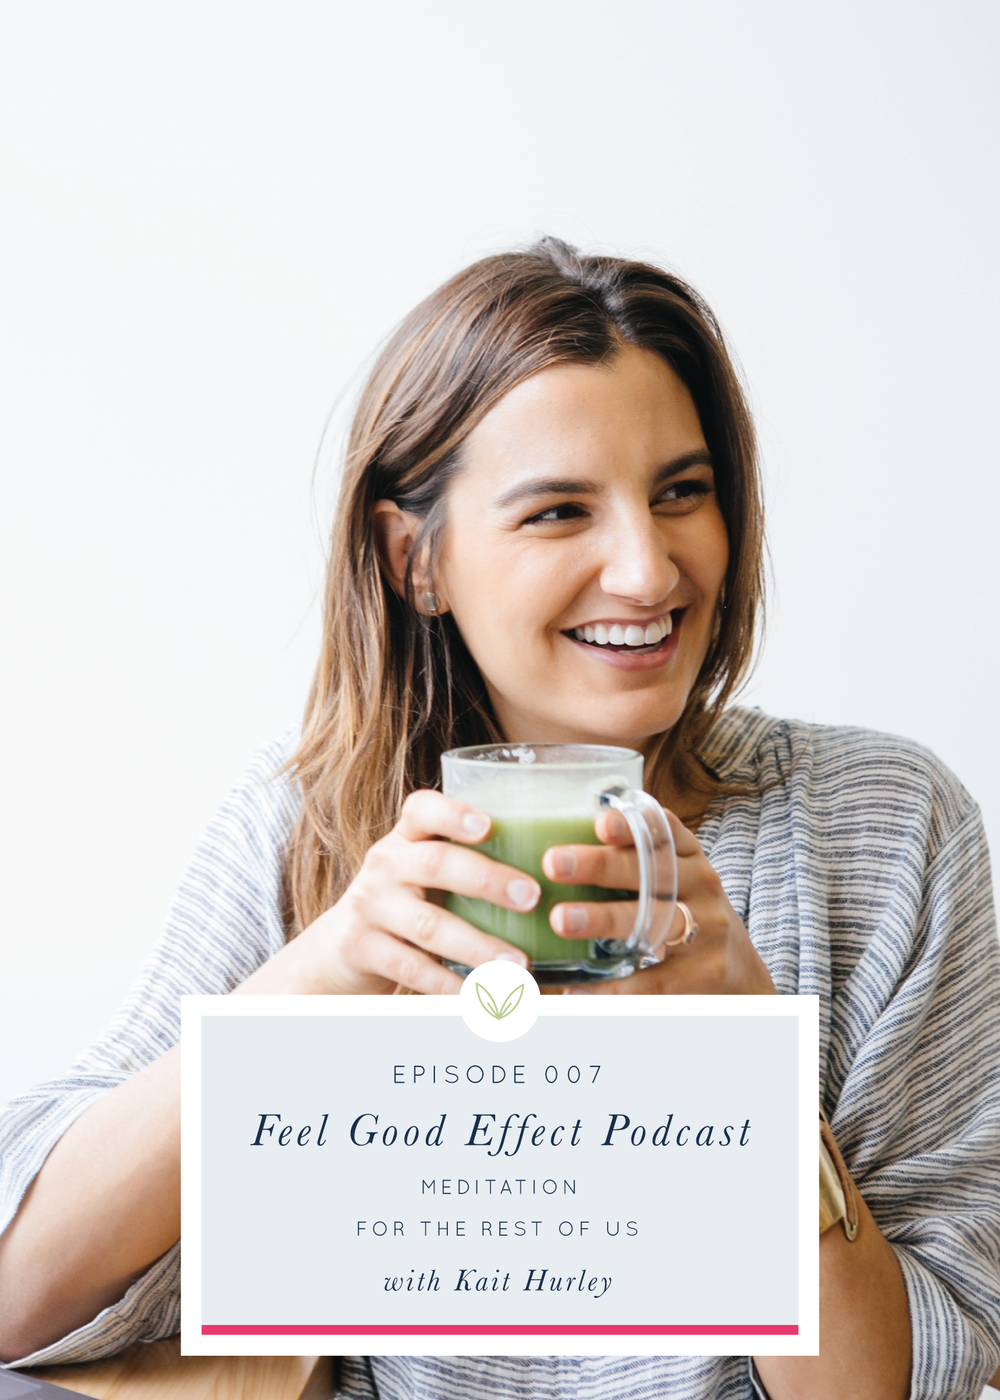 Kait Hurley on the Feel Good Effect Podcast